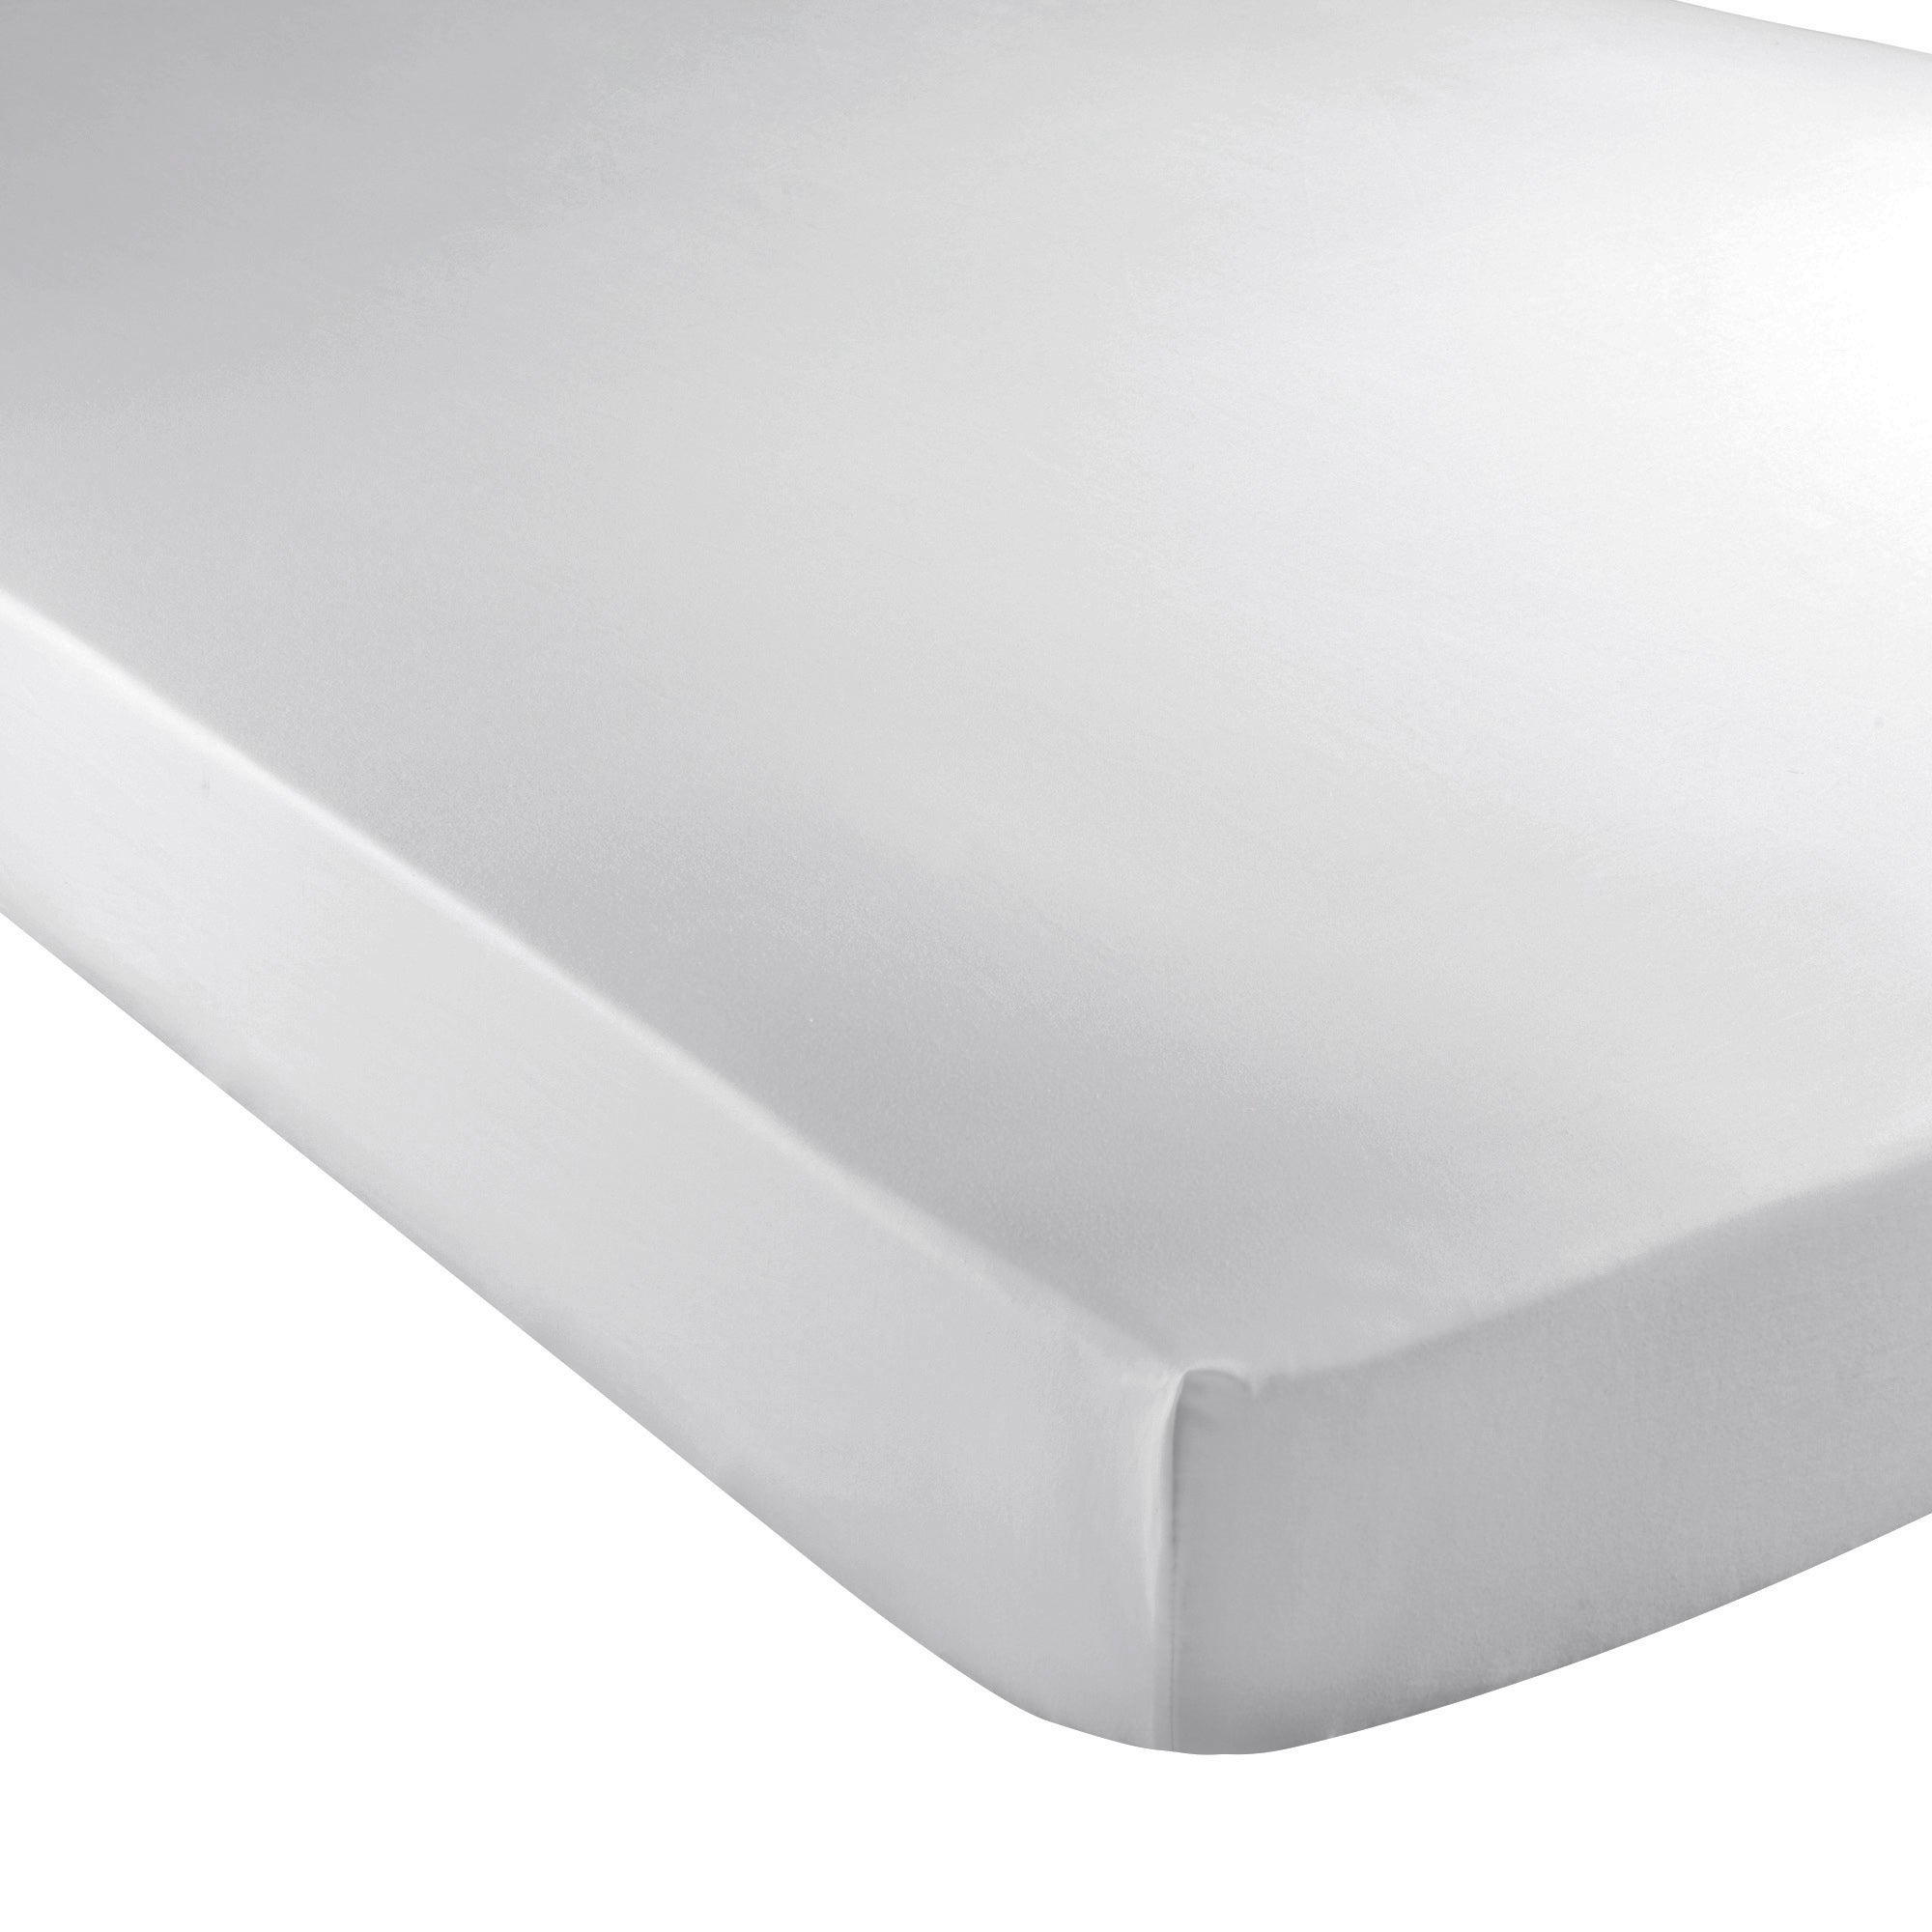 Image of Hotel 300 Thread Count 32cm Silver Fitted Sheet Silver (Grey)